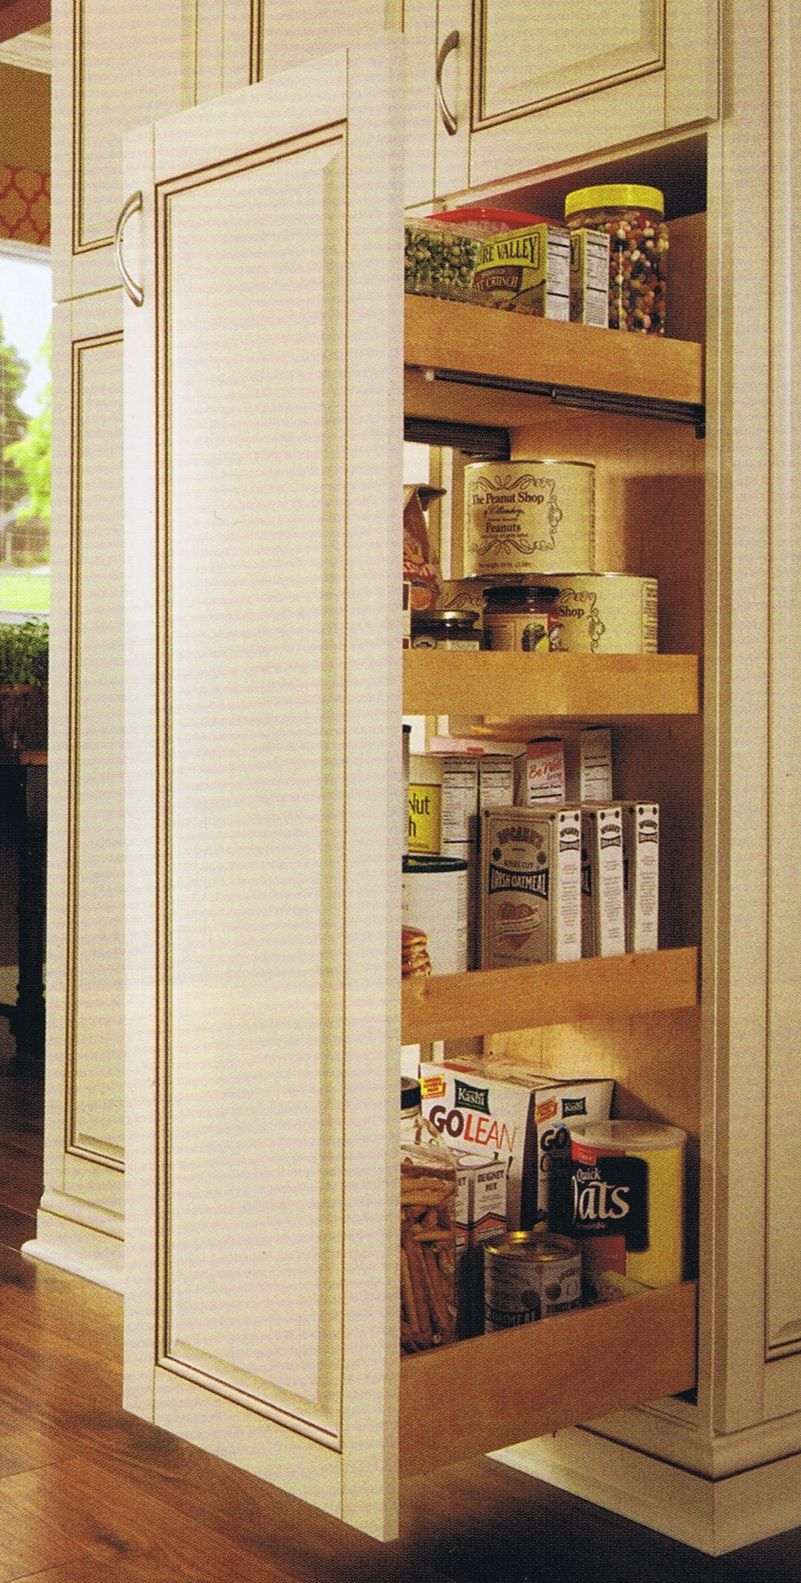 Design Craft Cabinetry Organizationcabinets Extraordinaire Pantry Cabinet Kitchen Cabinets Decor Pantry Storage